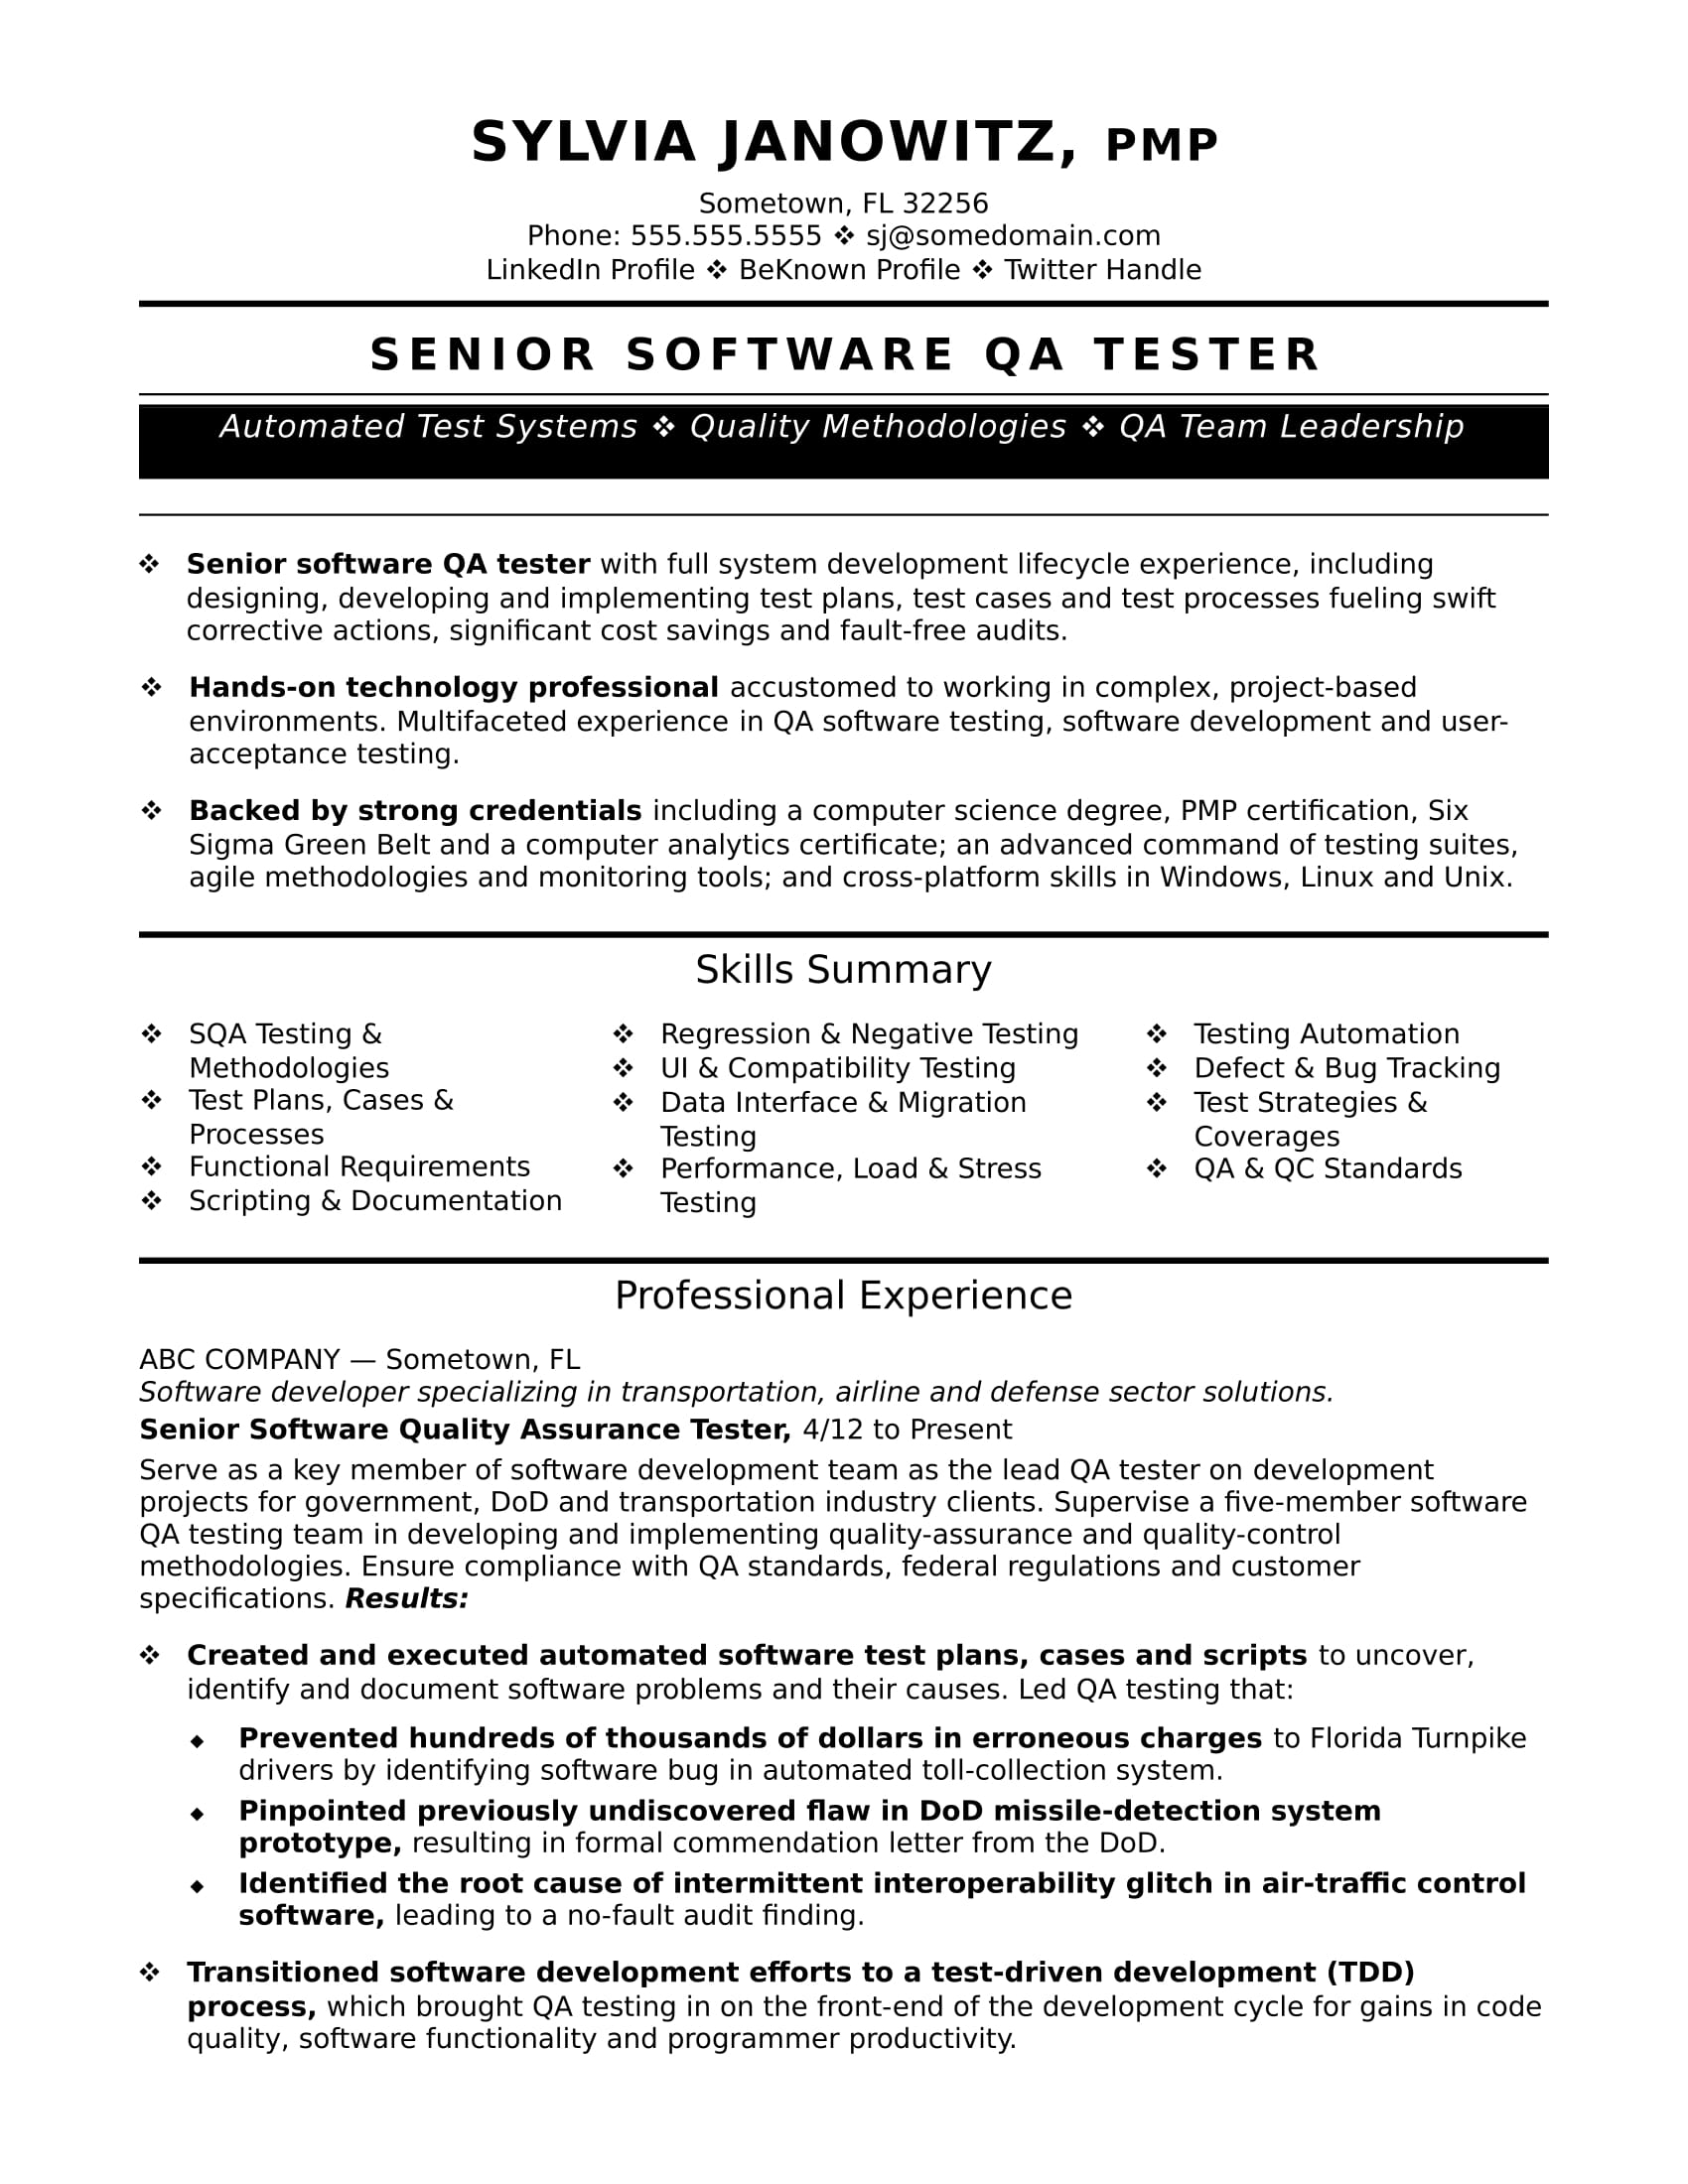 Amazing Experienced QA Software Tester Resume Sample Regard To Software Testing Resume